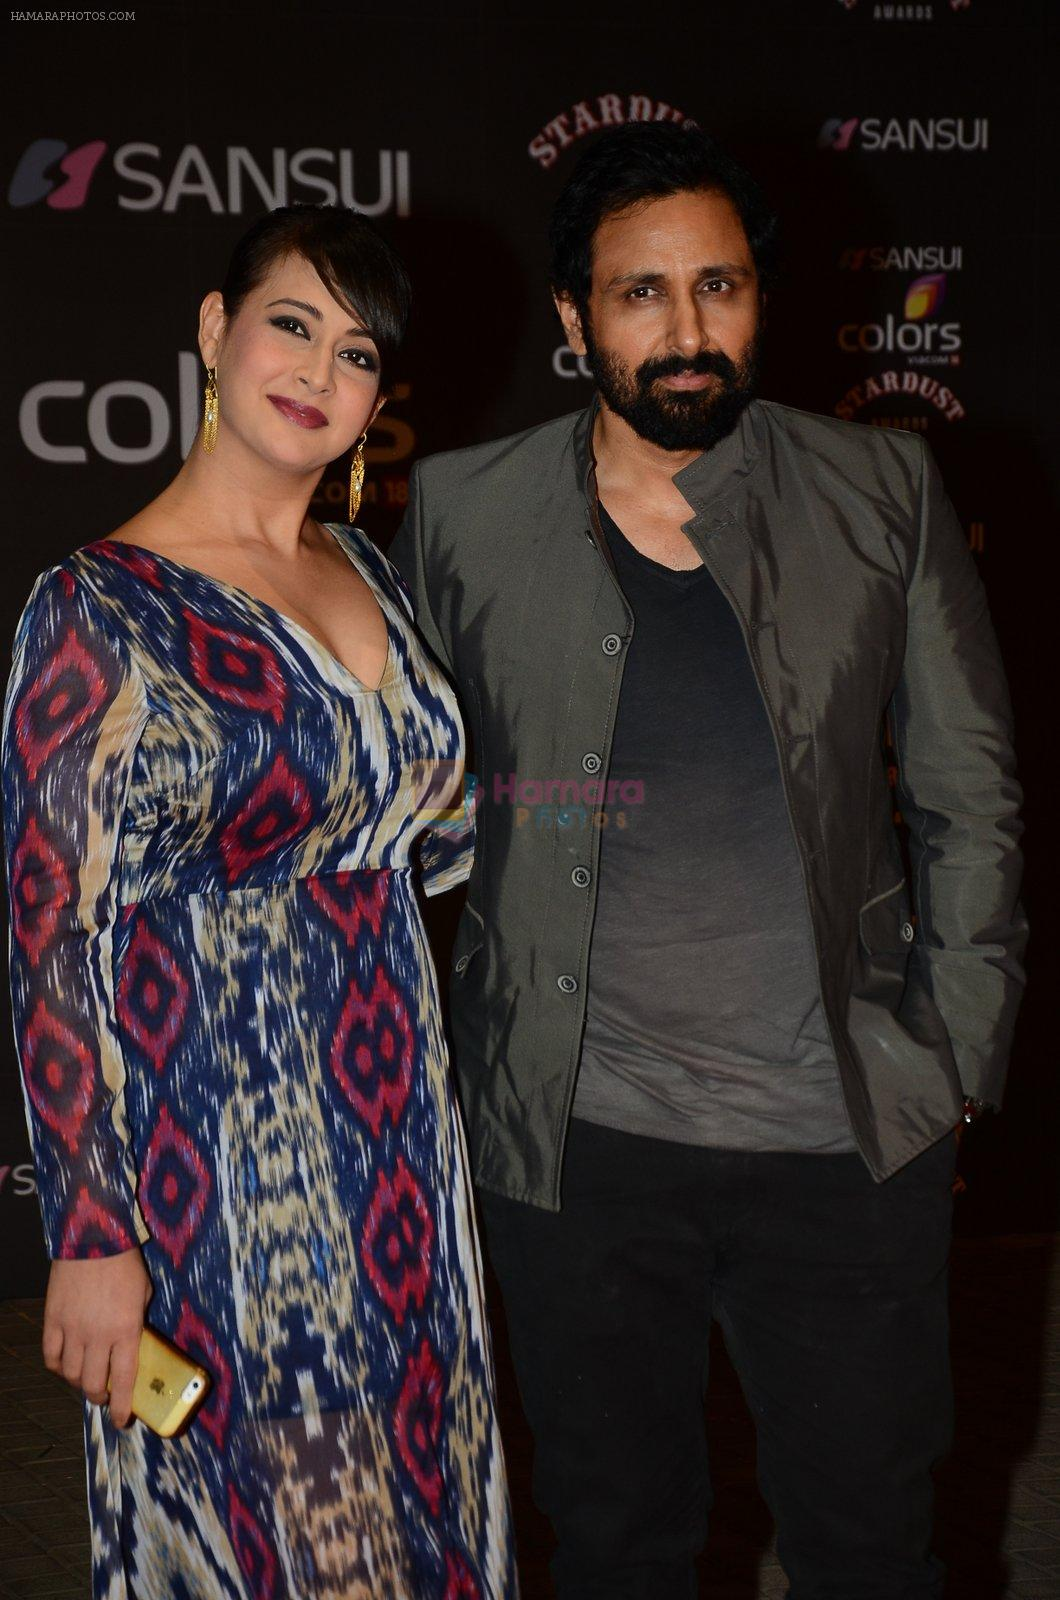 Preeti Jhangiani, Pravin Dabas at the red carpet of Stardust awards on 21st Dec 2015